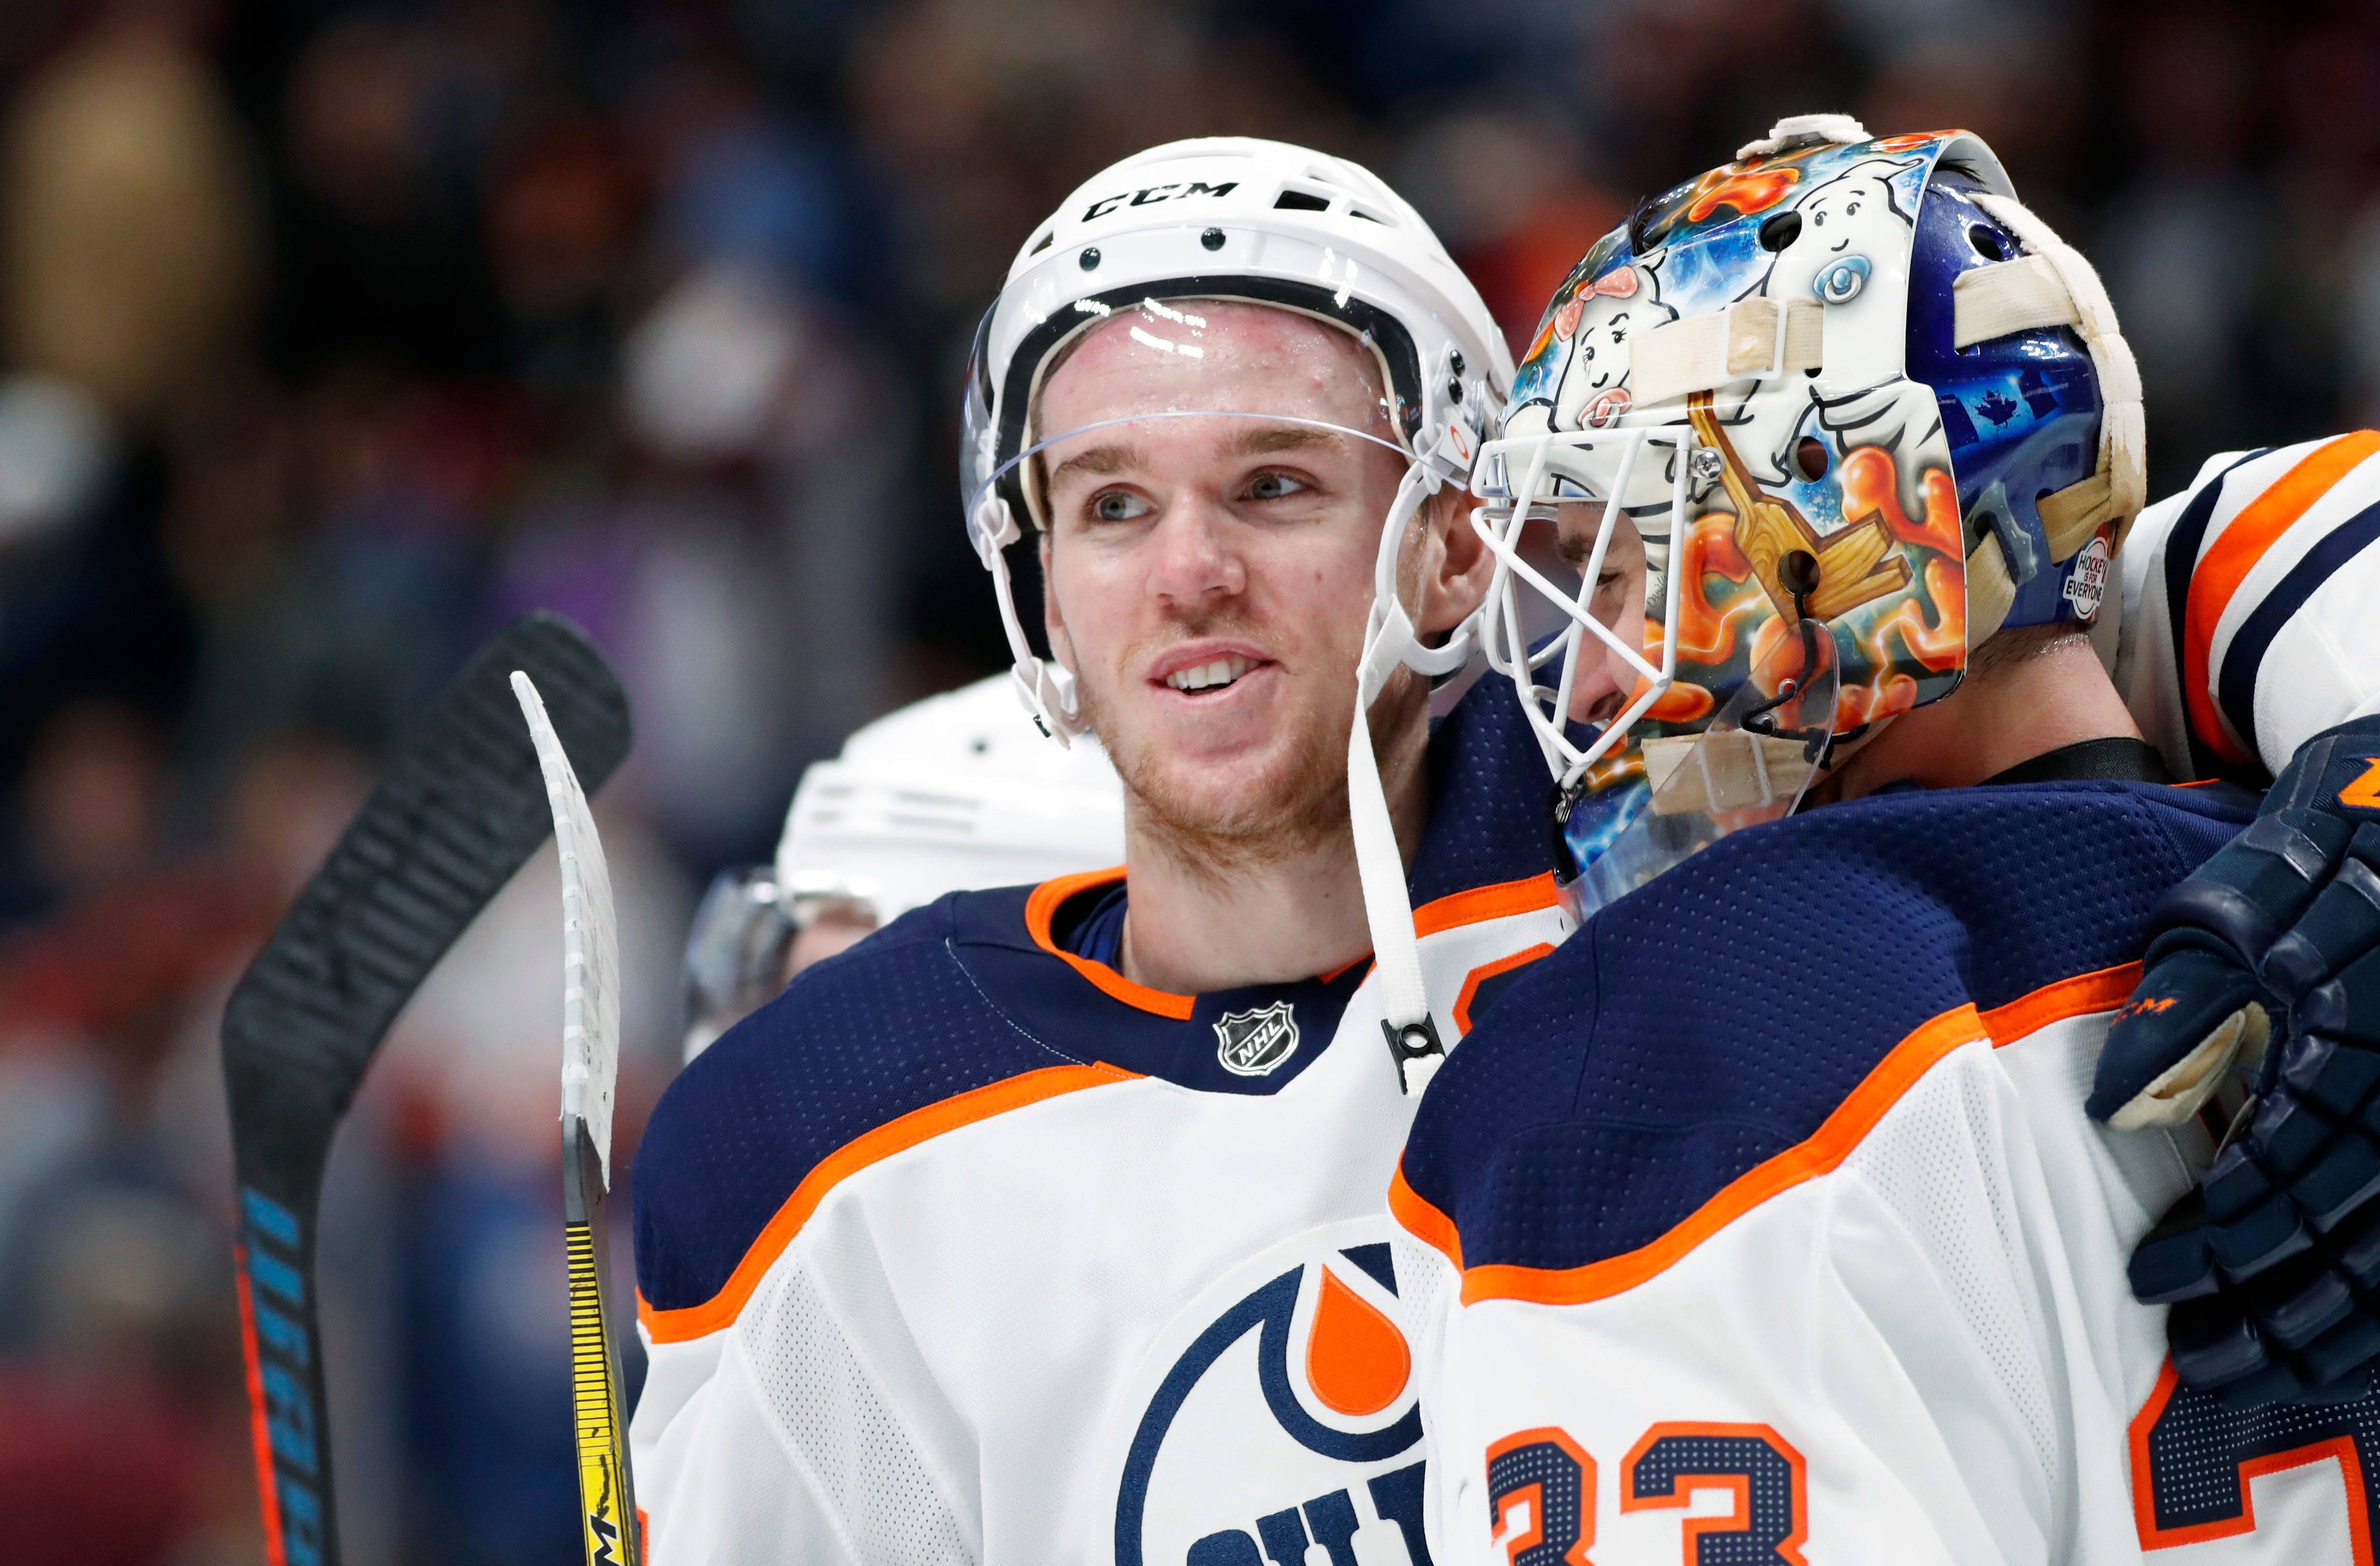 Connor McDavid's hat trick helps Oilers end Avalanche's home streak